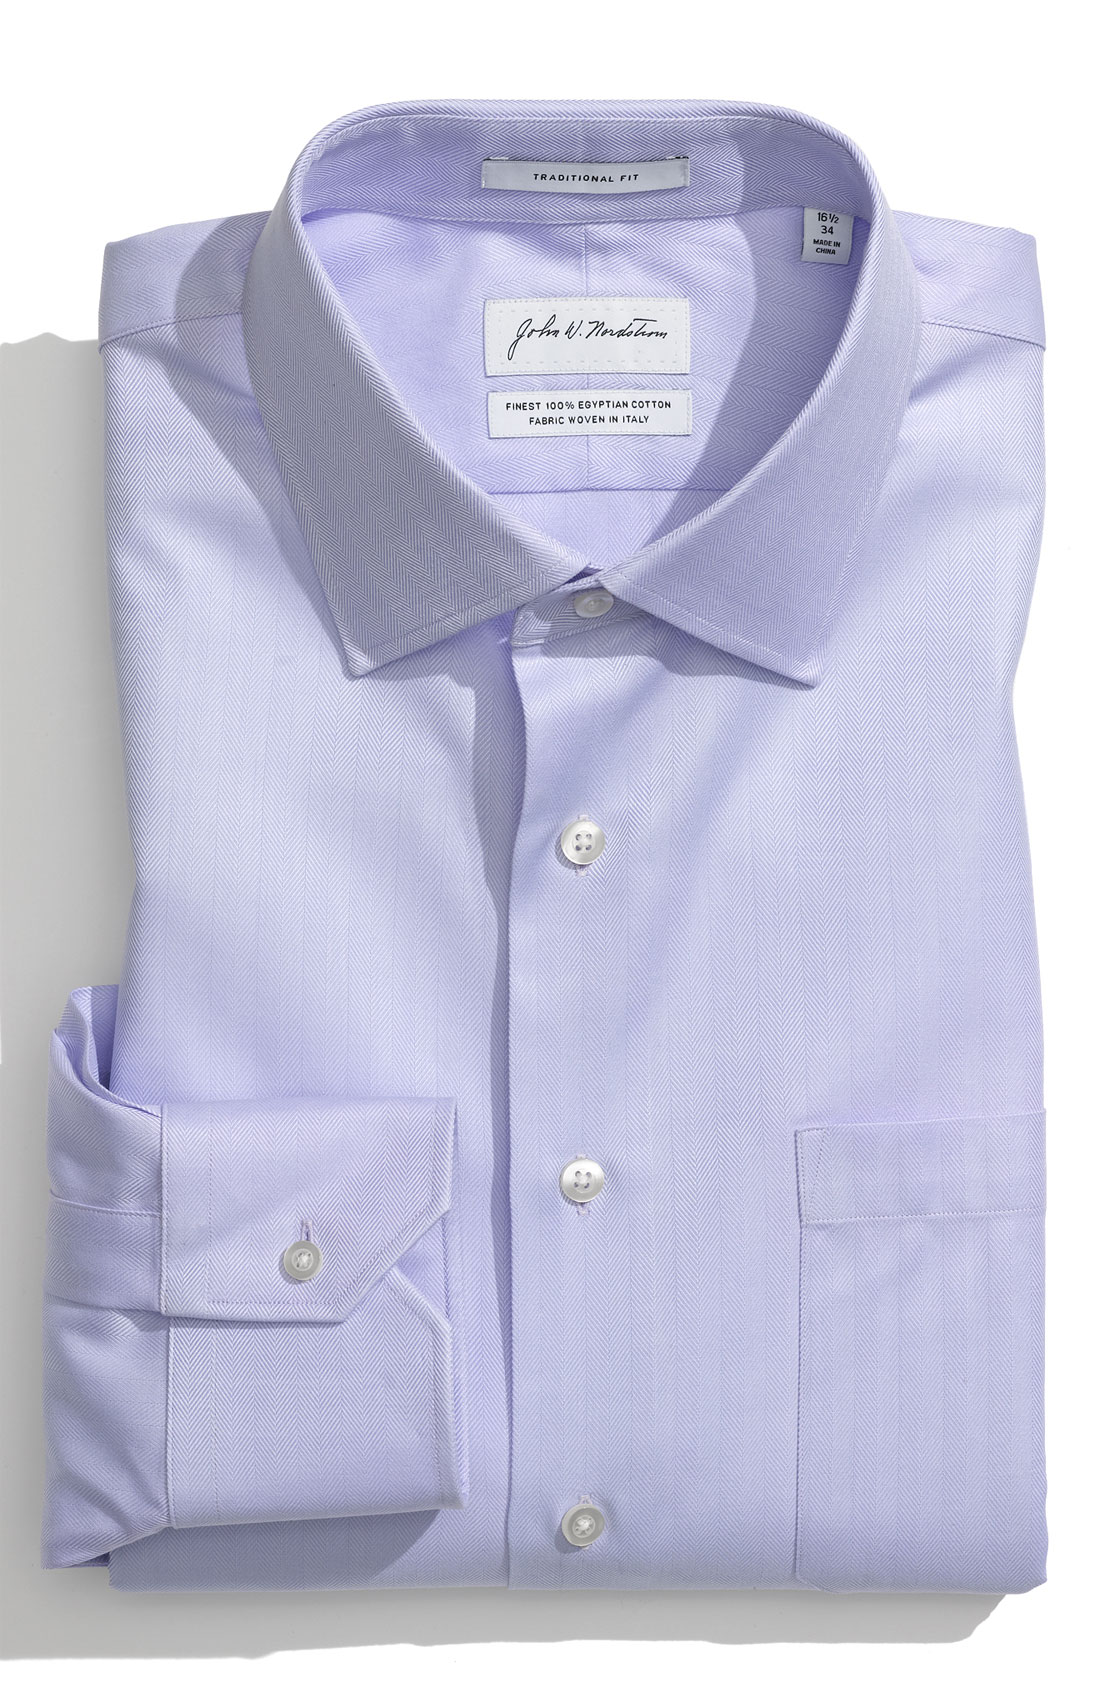 John w nordstrom traditional fit egyptian cotton for Mens egyptian cotton dress shirts